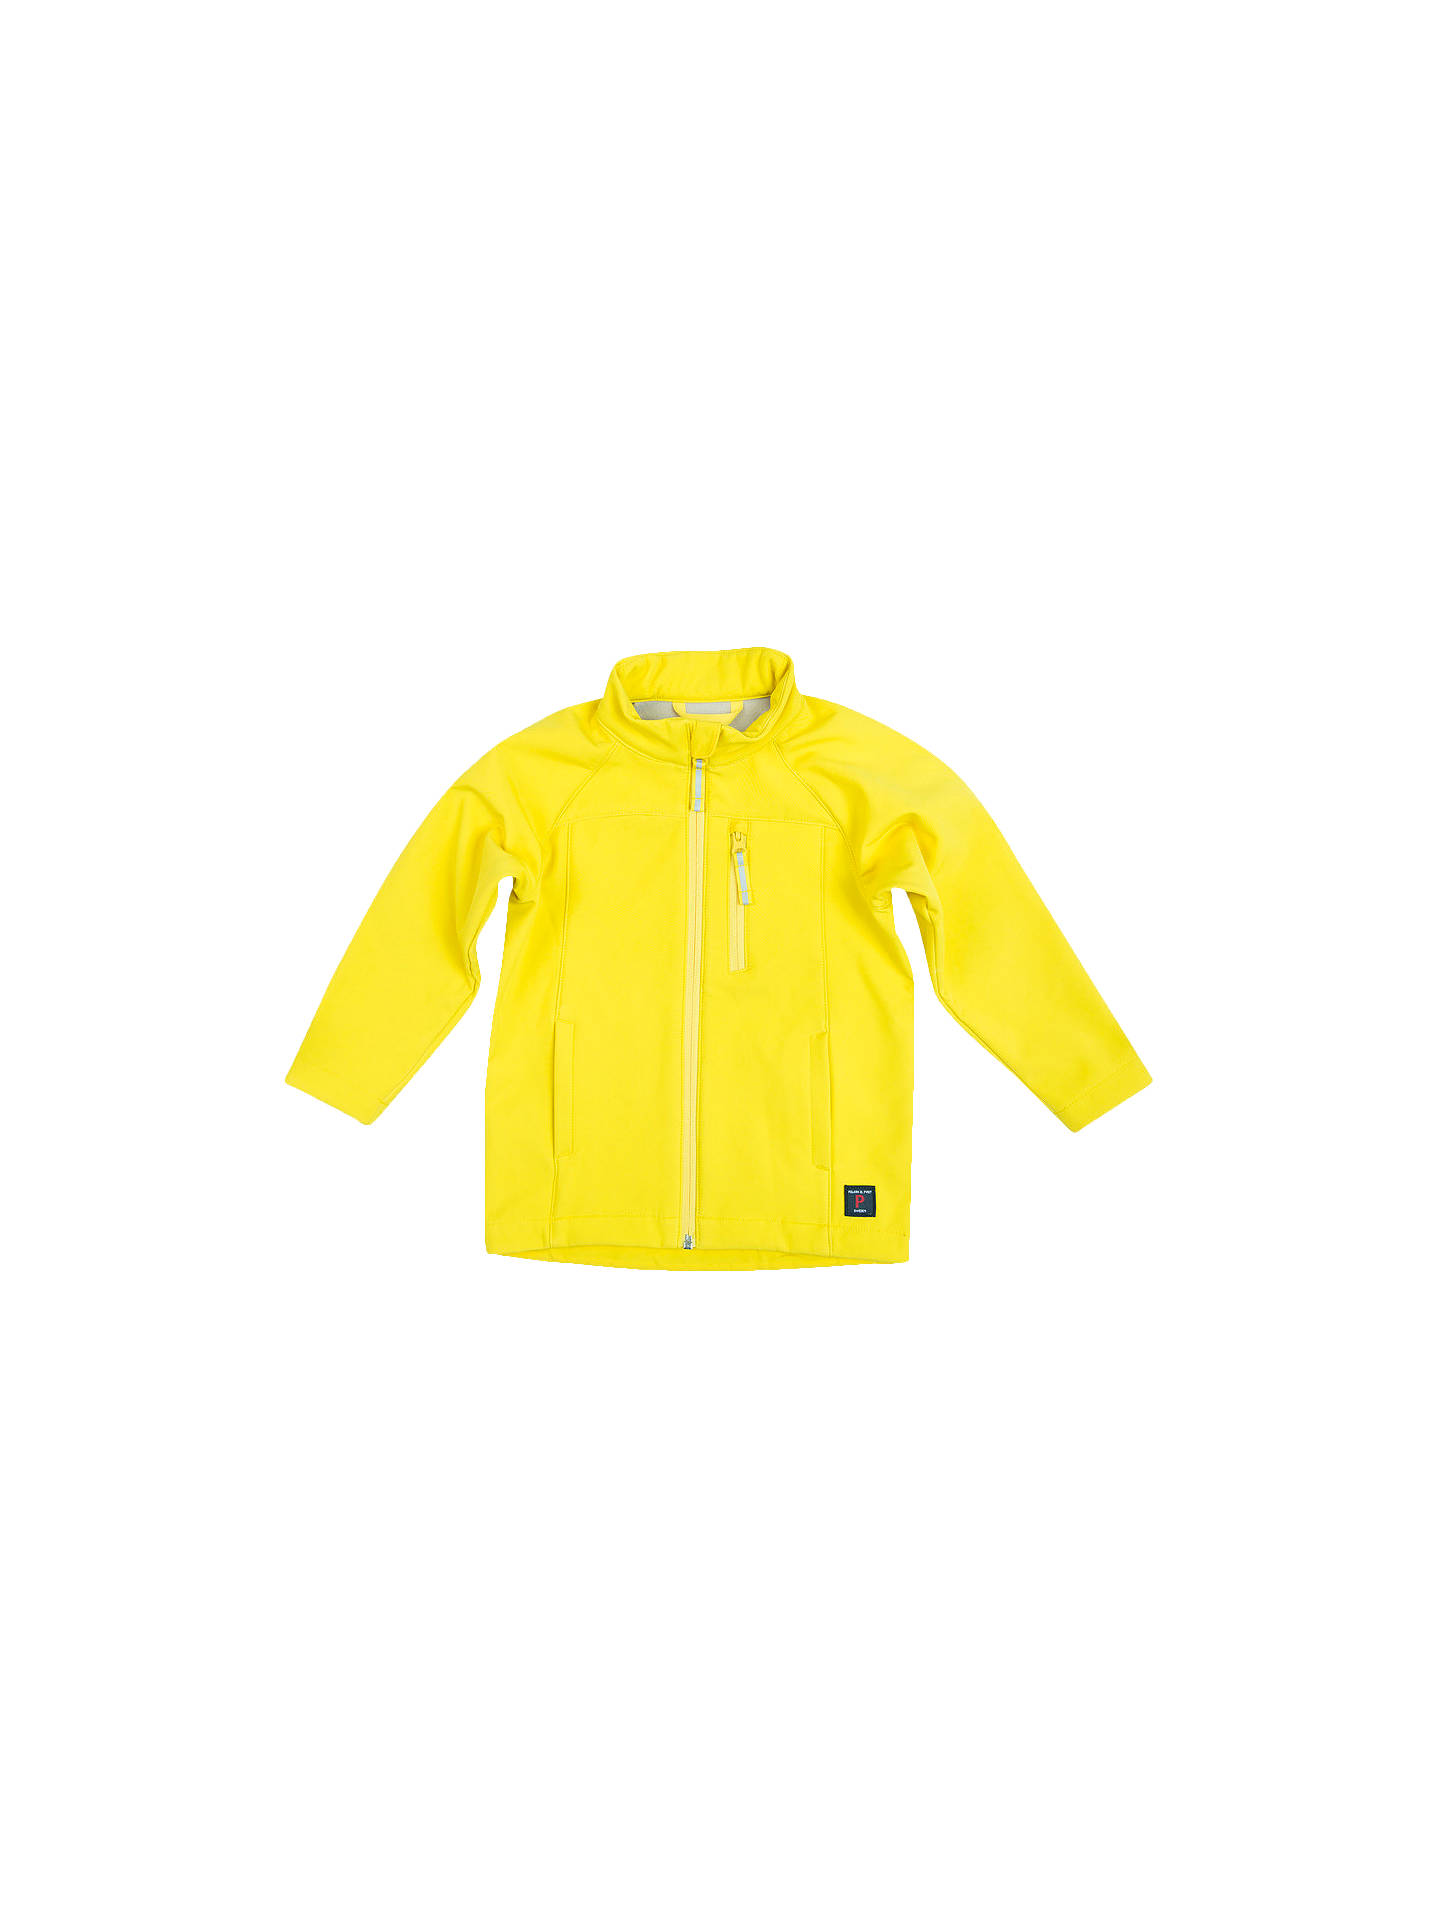 cb3fdc009 Polarn O. Pyret Children s Water-Resistant Fleece Lined Jacket ...